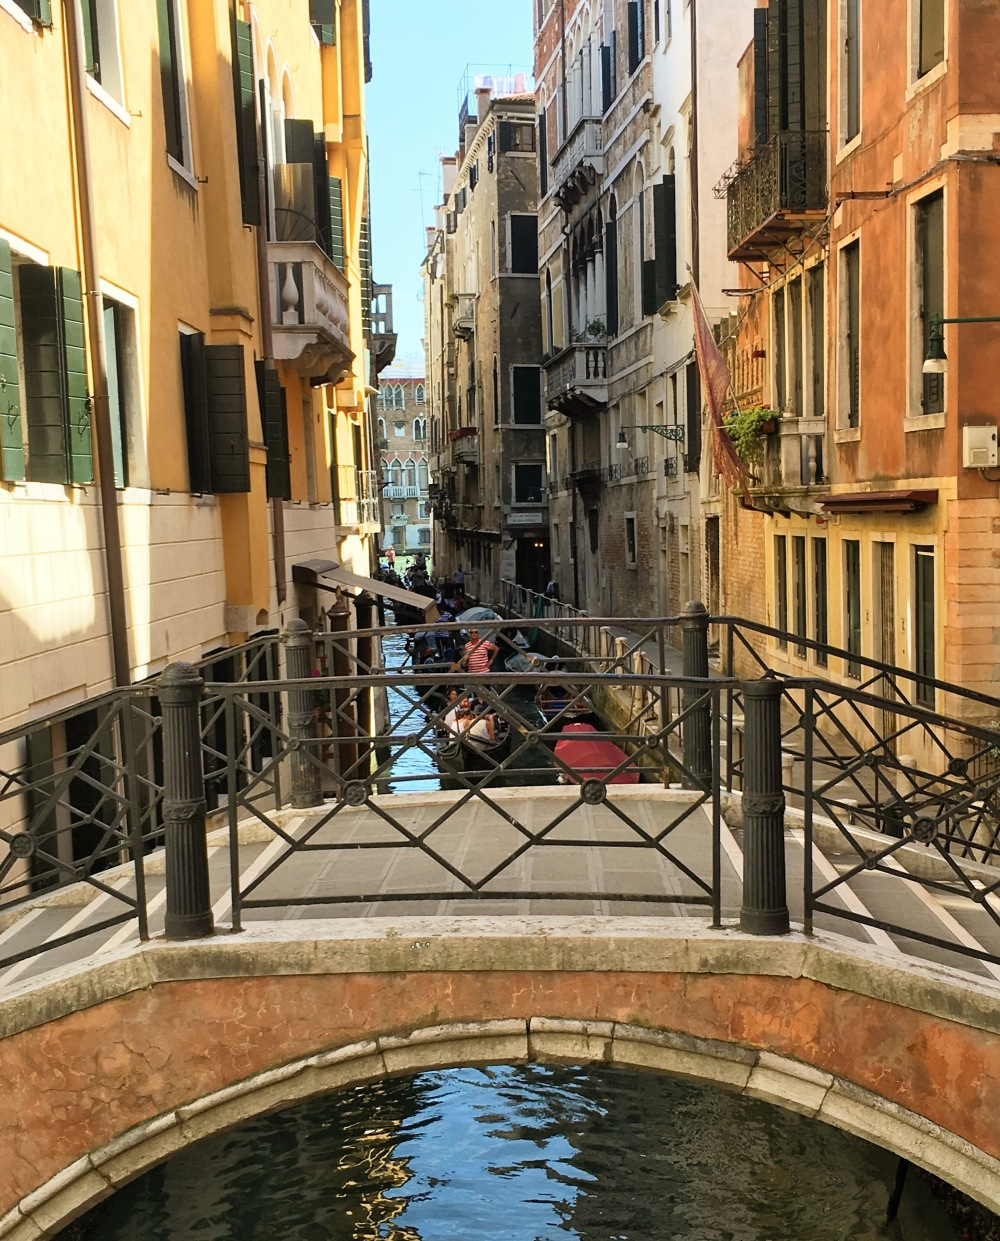 Venice bridge and canals